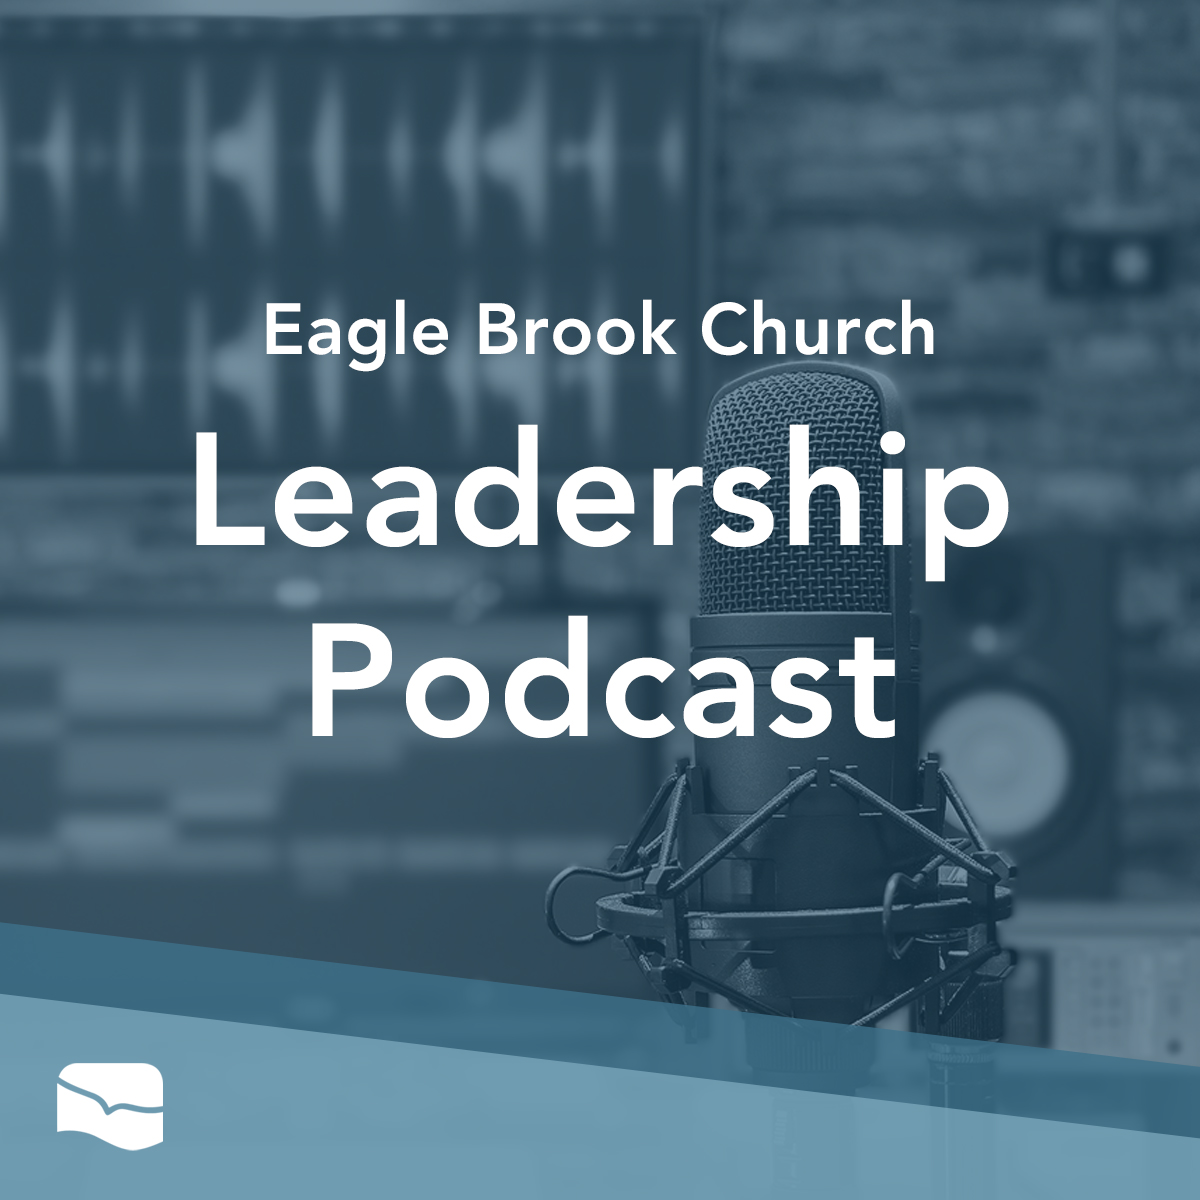 Eagle Brook Church Leadership Podcast